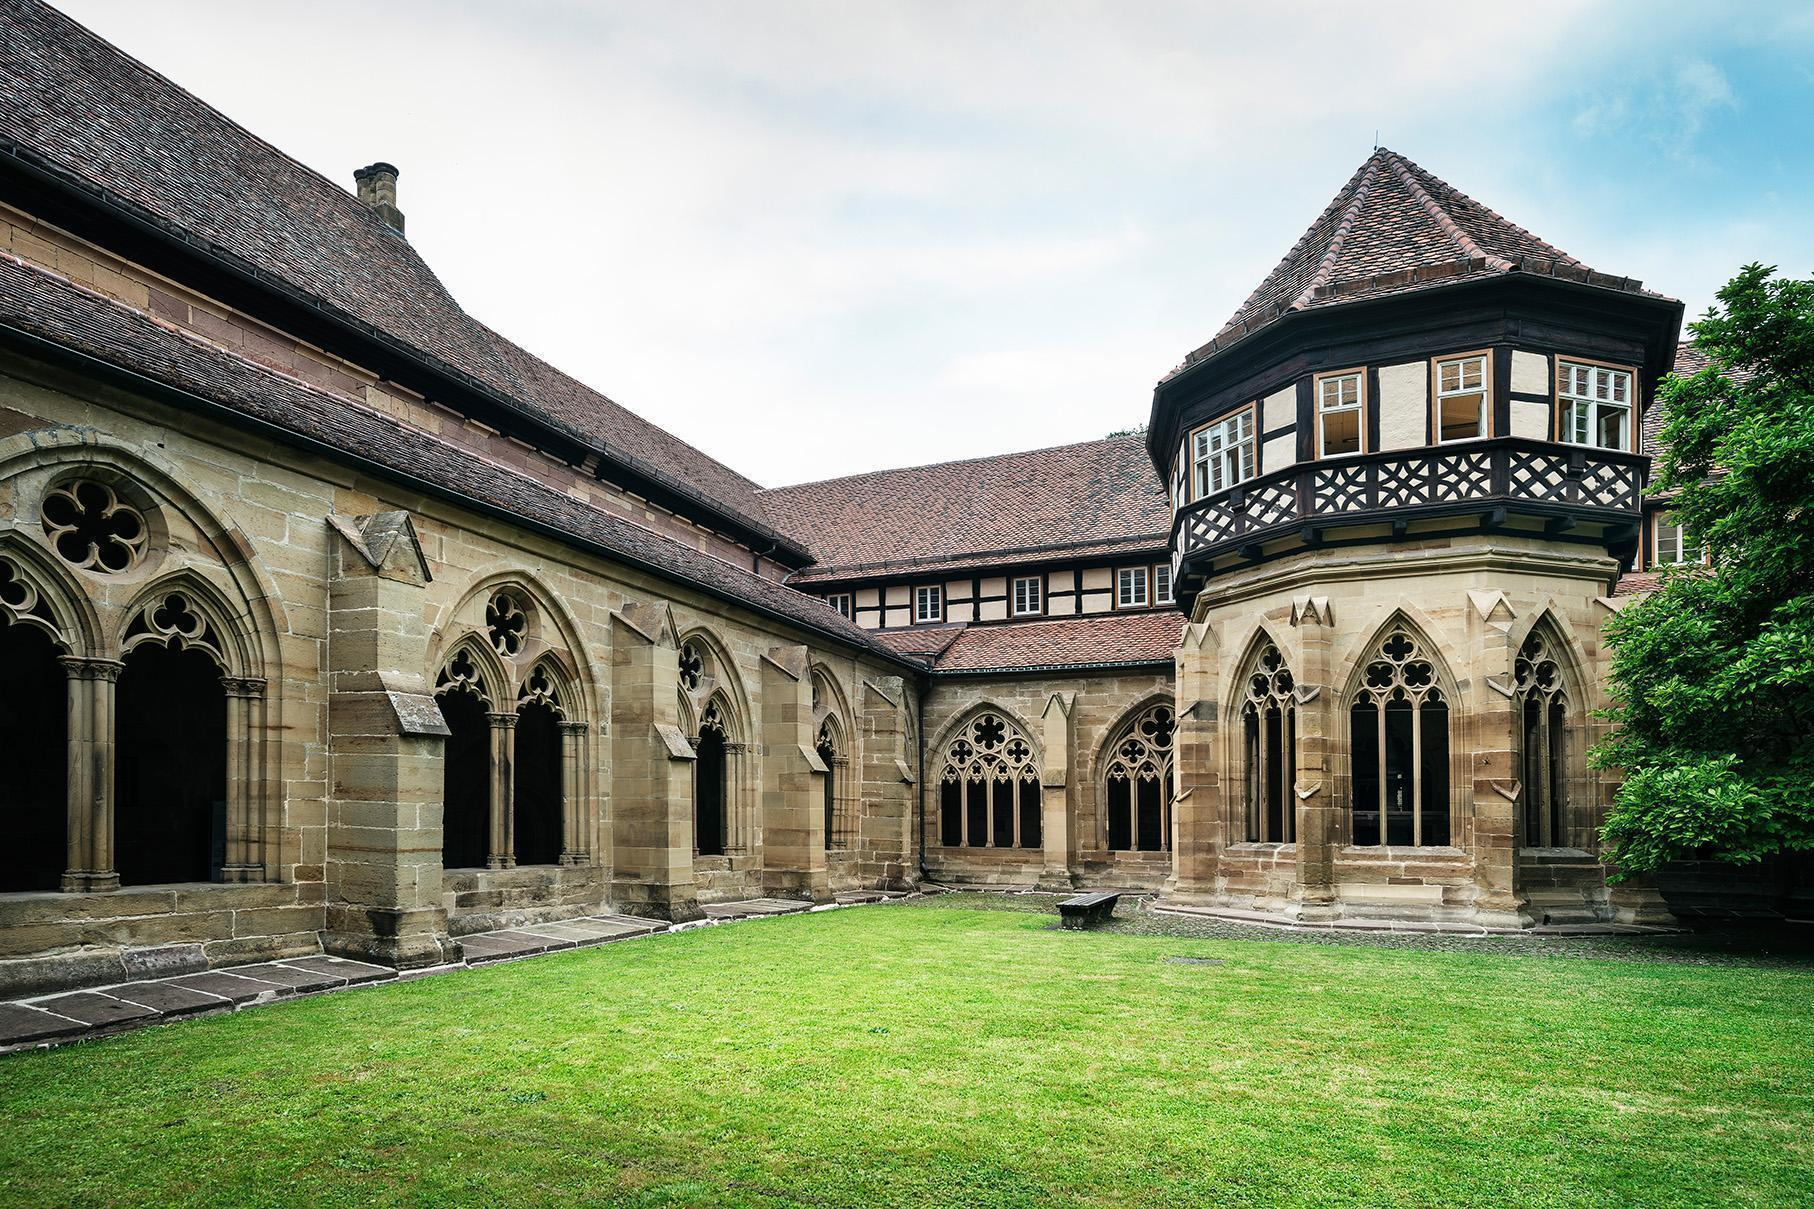 Maulbronn Monastery, refectories, fountain house and kitchen along the monastery's cloister. Image: Staatliche Schlösser und Gärten Baden-Württemberg, Günther Bayerl